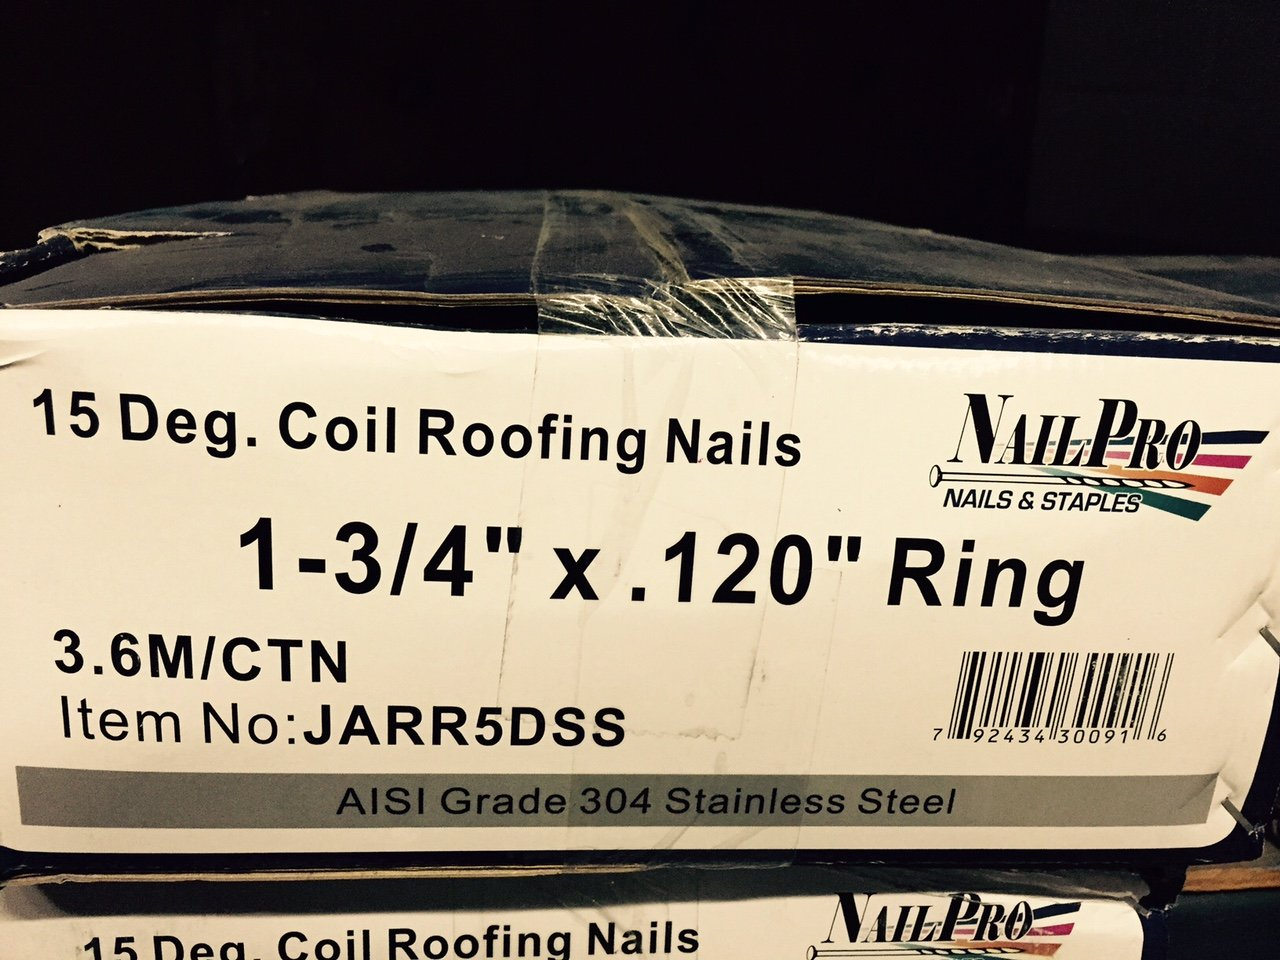 NailPro 1 3/4 Inch By 0.120   15 Degree Wire Coil   Stainless Steel   Ring  Shank Roofing Nail 3600 Pc. / CTN   Collated Roofing Nails   Amazon.com